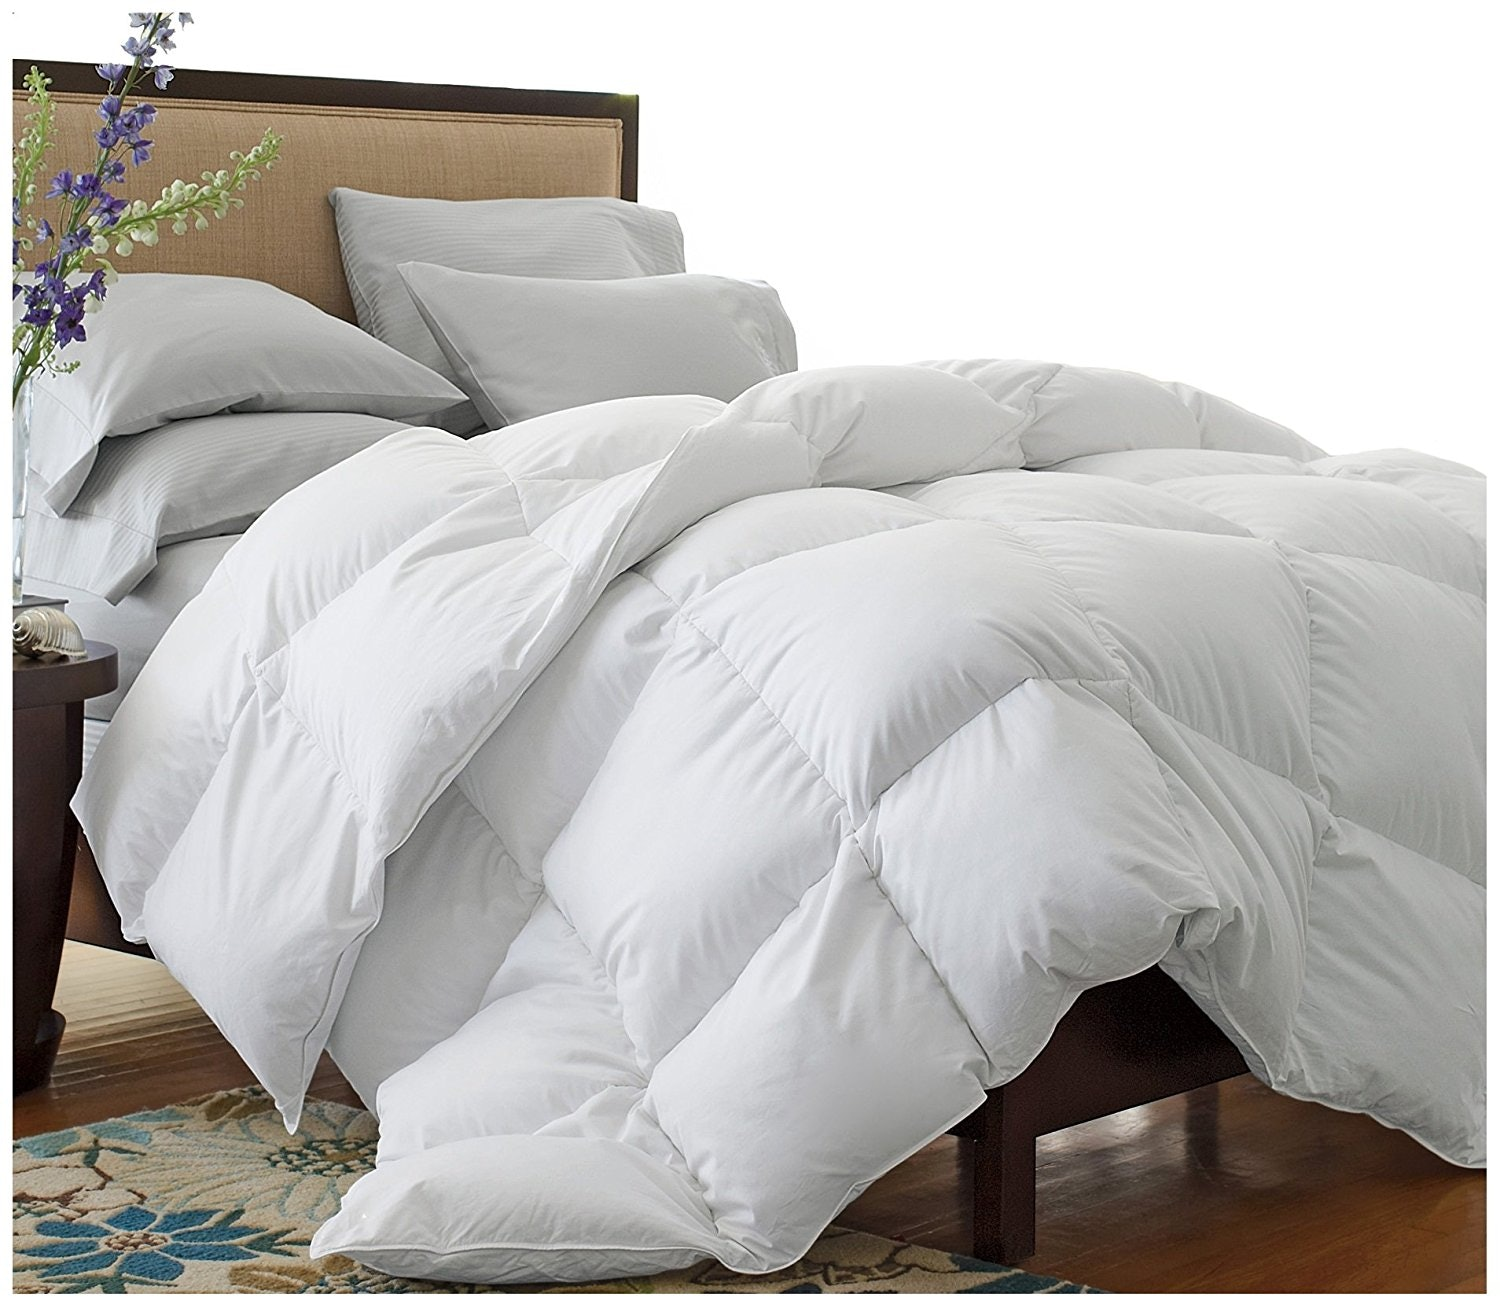 The 5 warmest comforters for winter